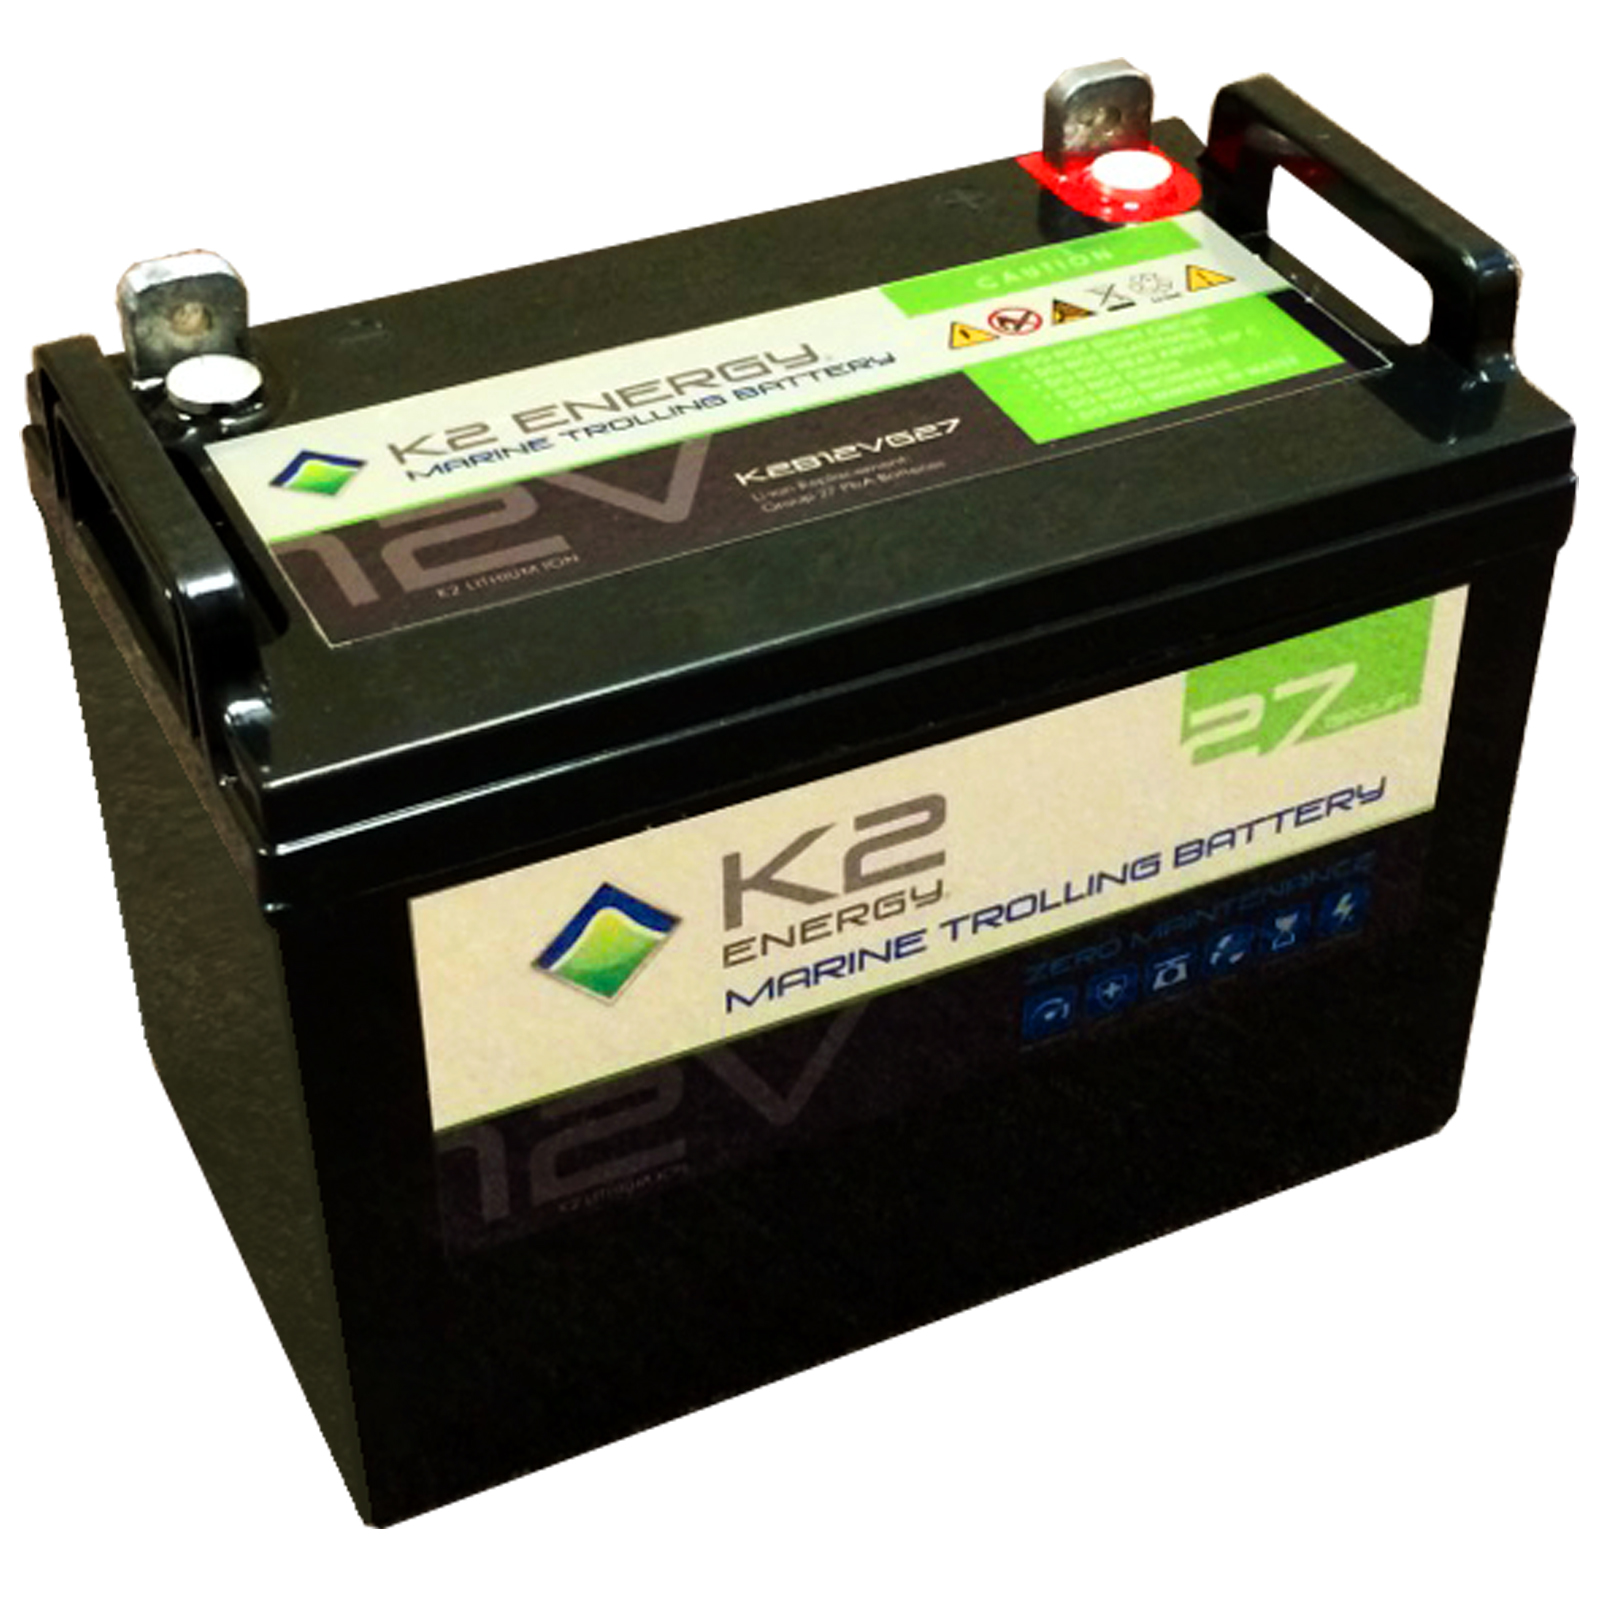 K2 energy 12v k2b12ve27 lithium iron phosphate marine for Marine trolling motor batteries